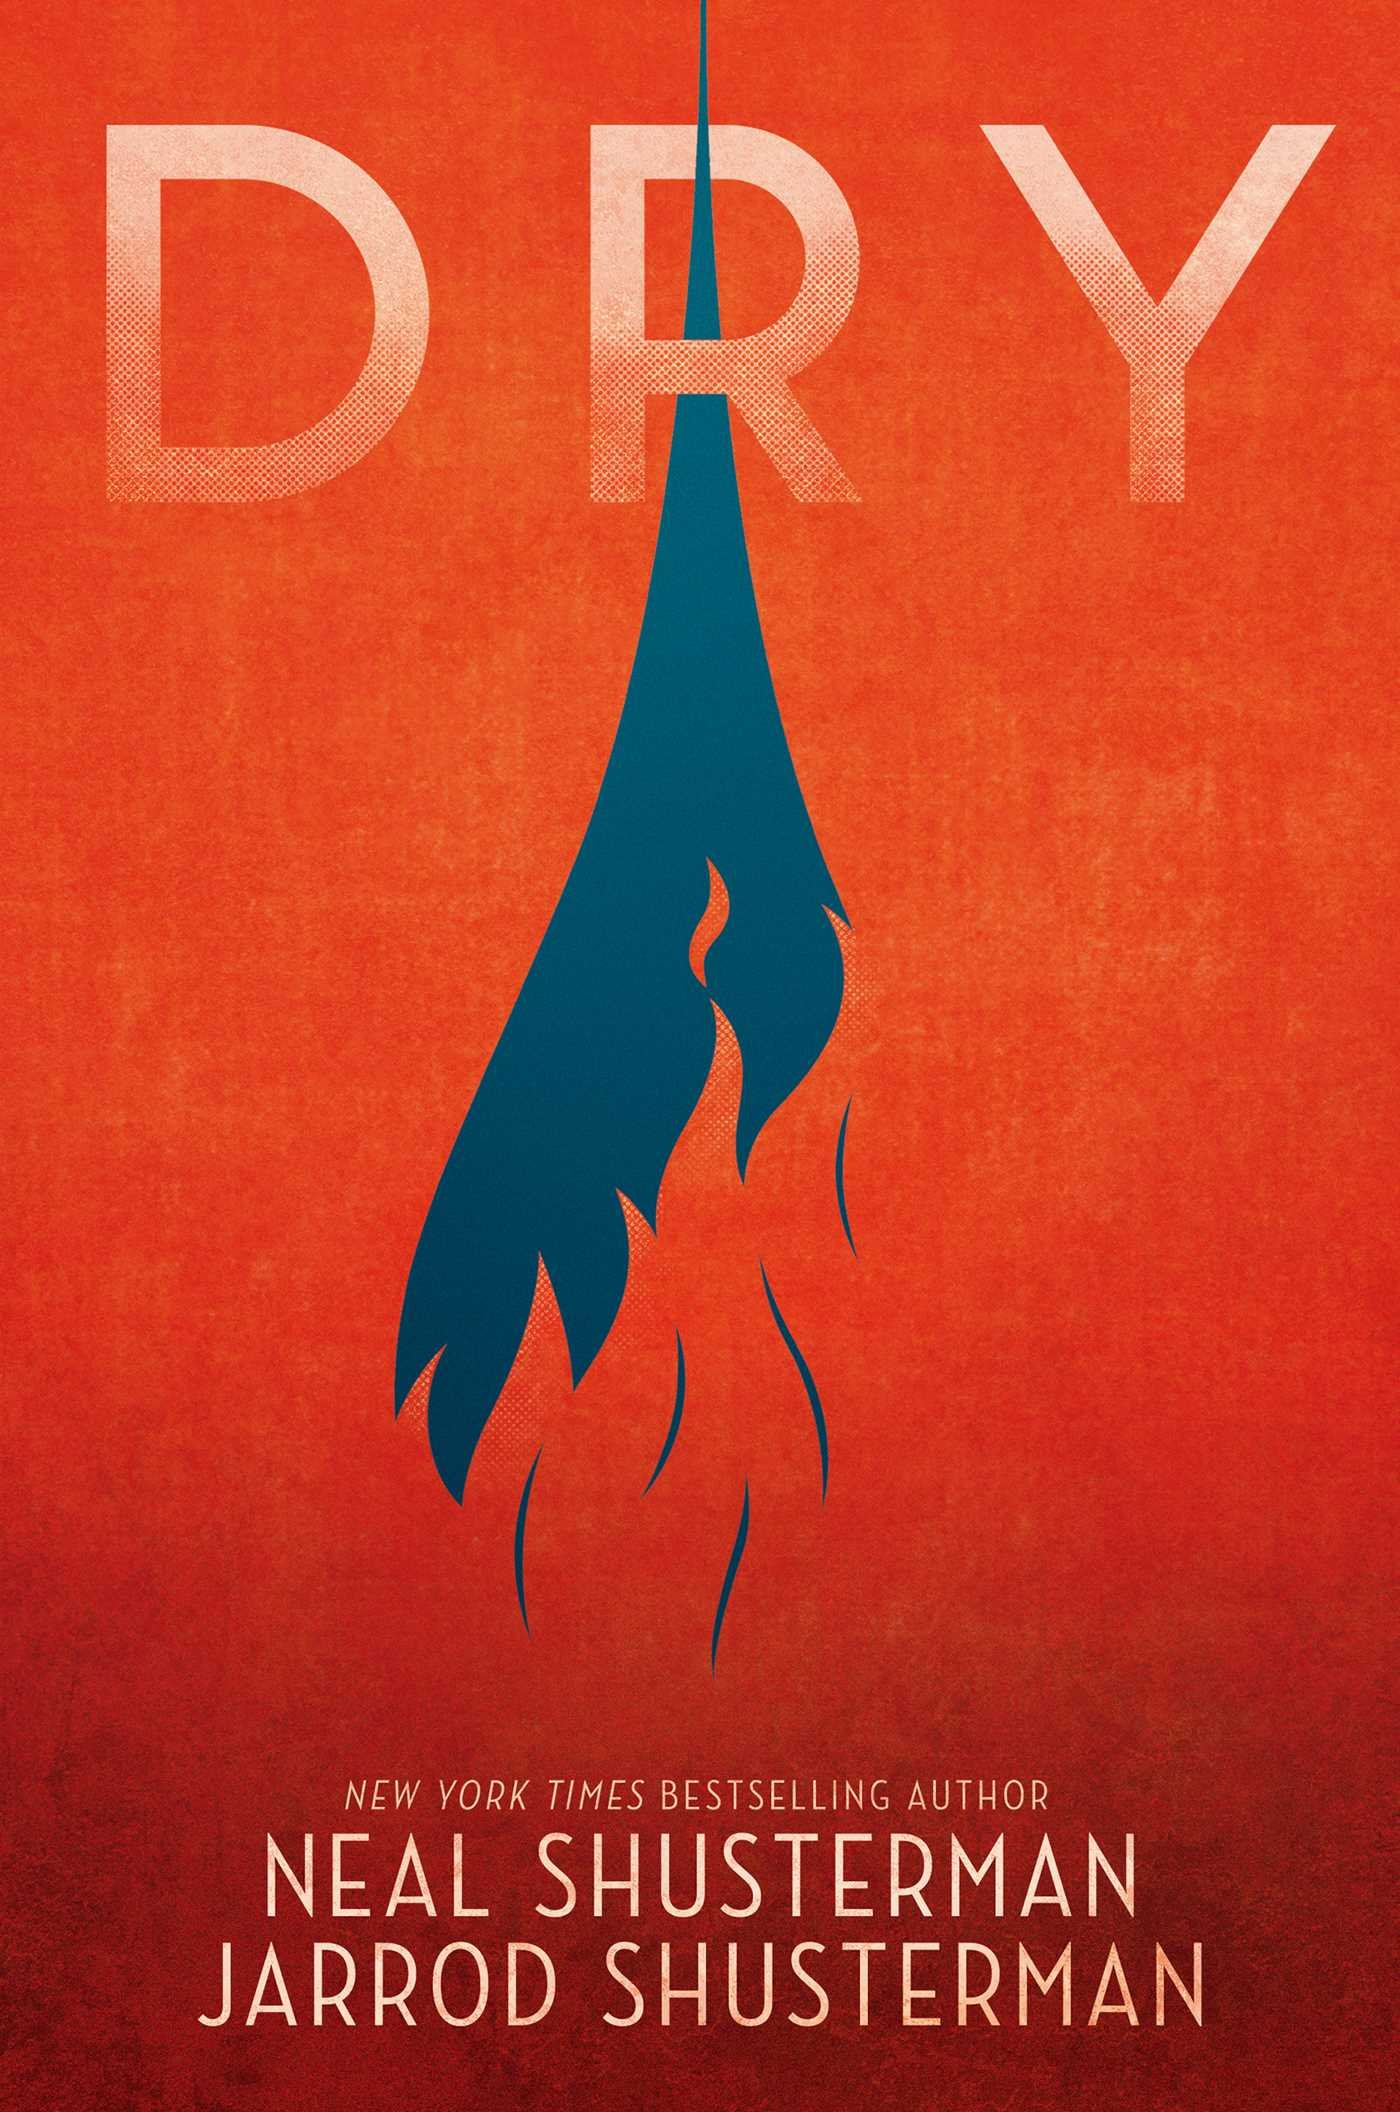 Image result for dry by neal shusterman